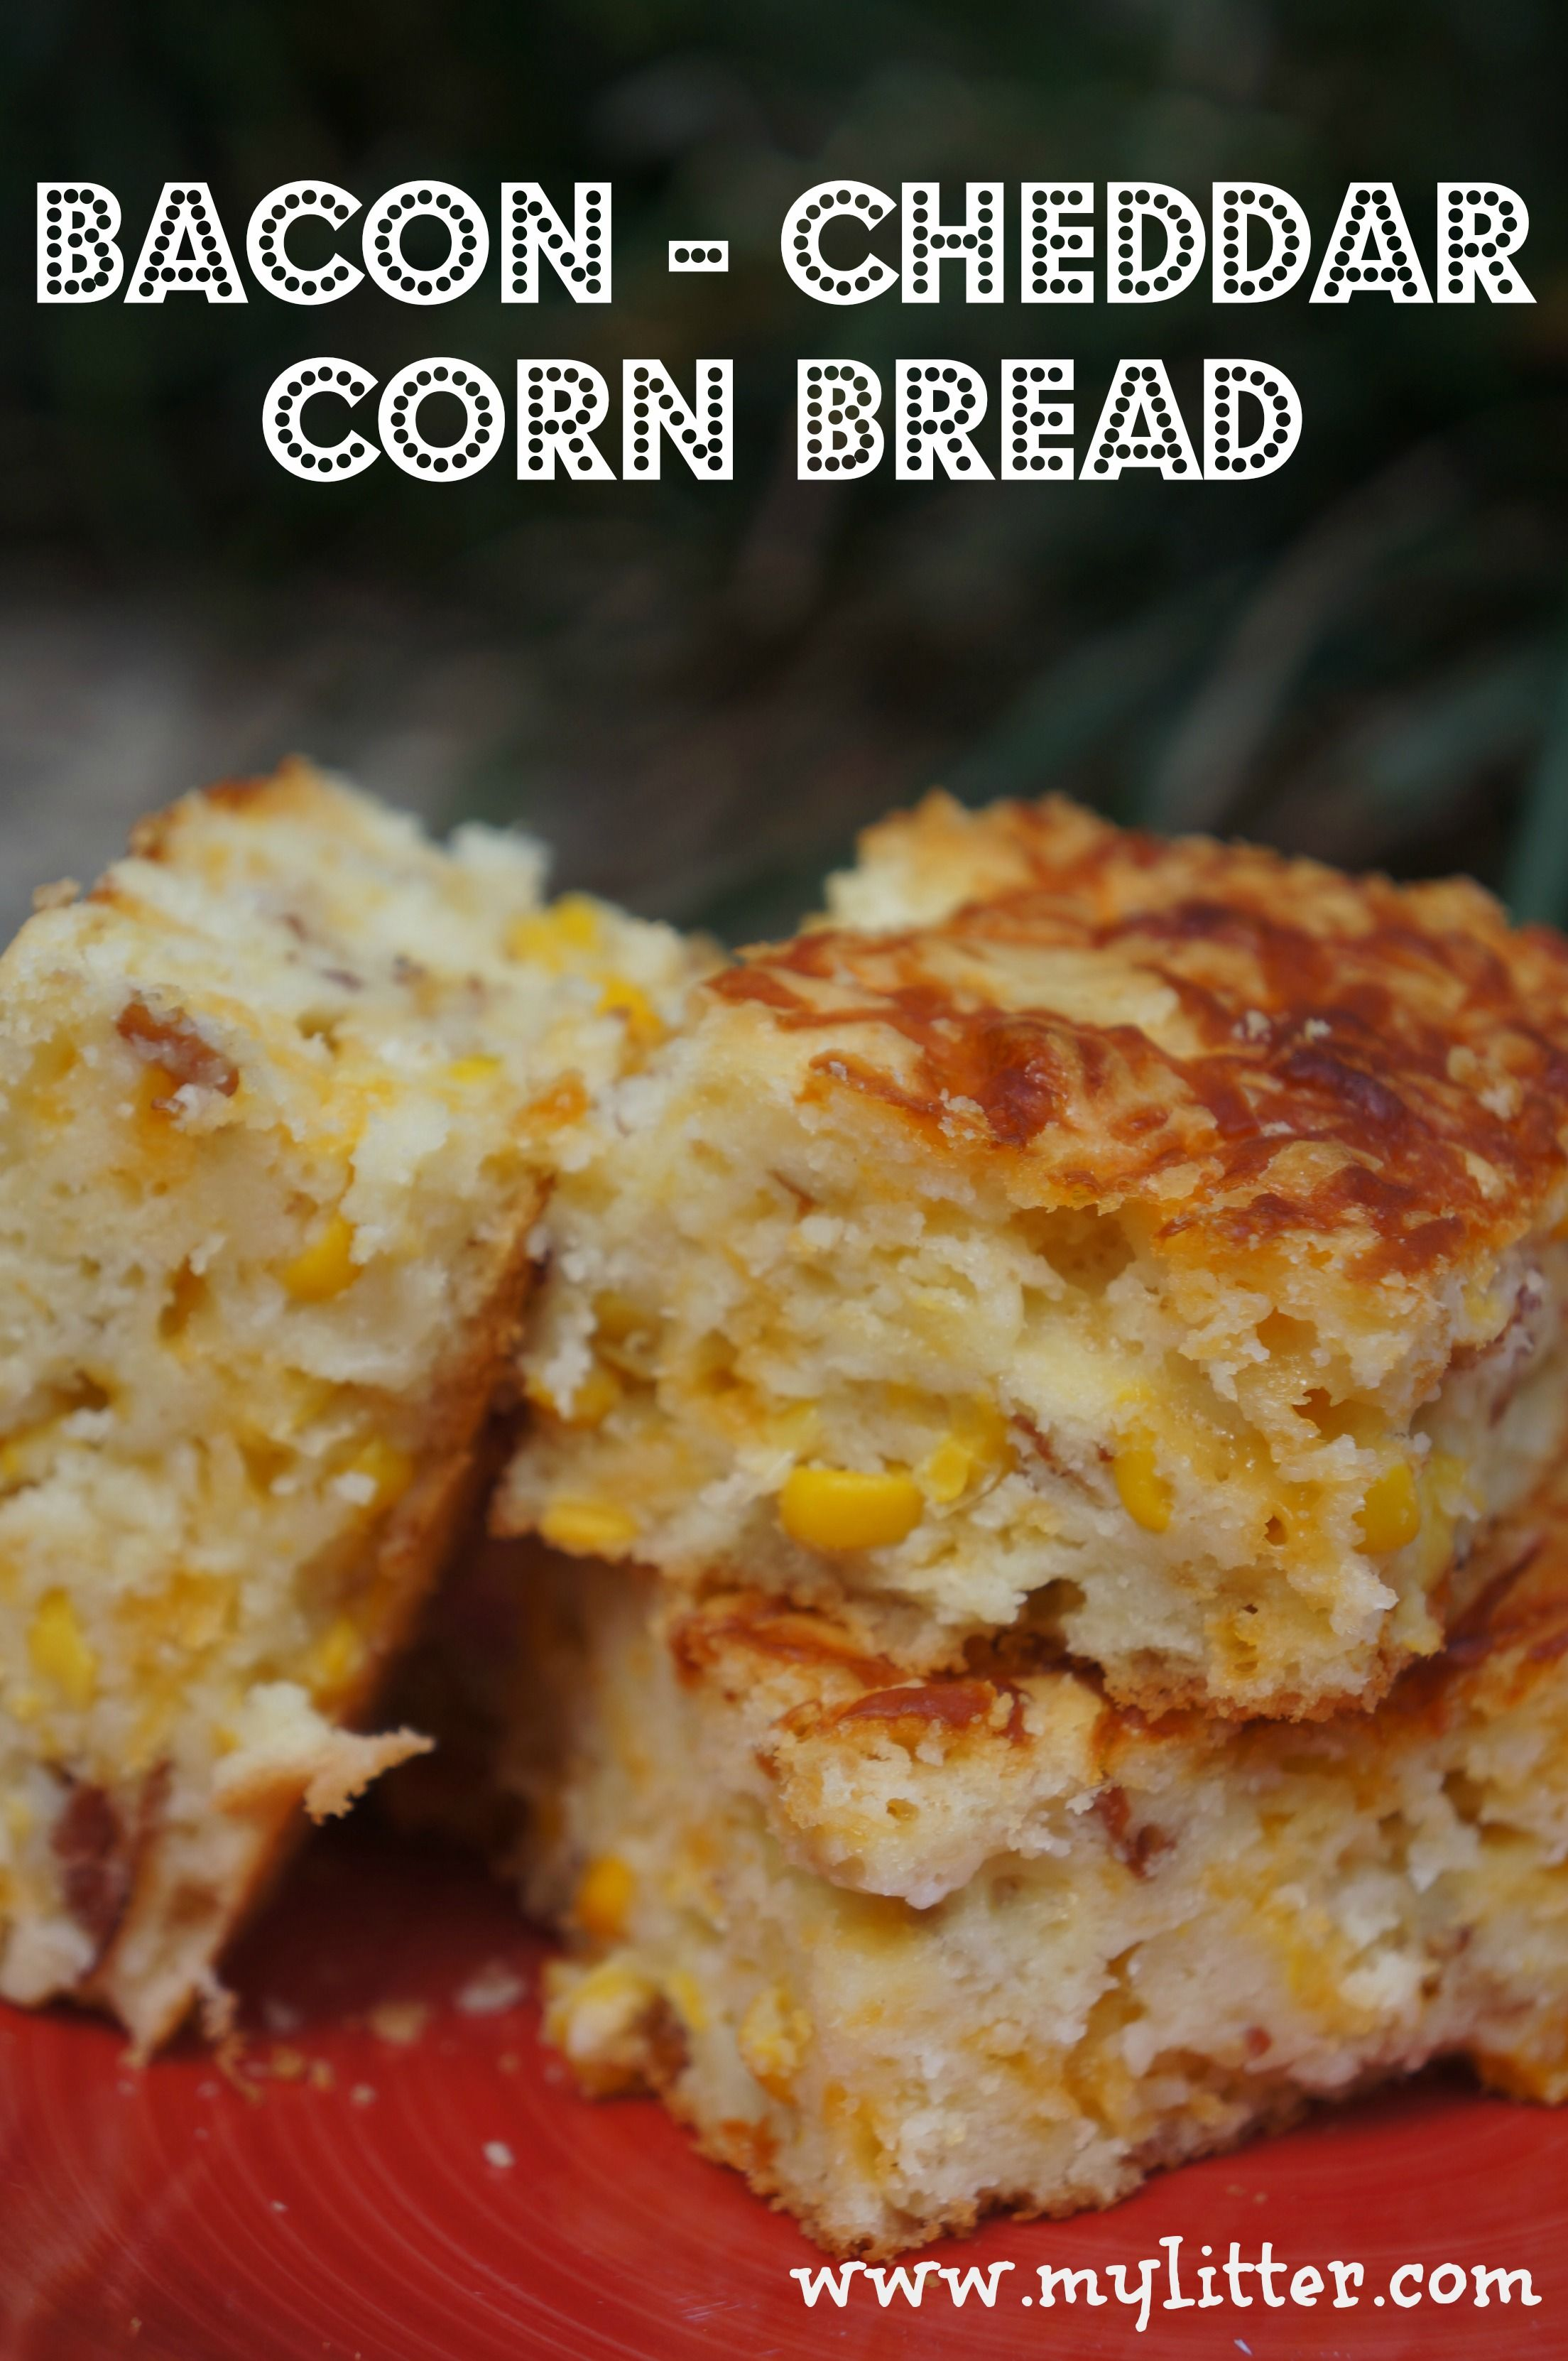 Bacon Cheddar Corn Bread Recipe >> I don't usually like cornbread (I know, I'm Southern, what's wrong with me?? LOL), but this sounds GREAT!!!